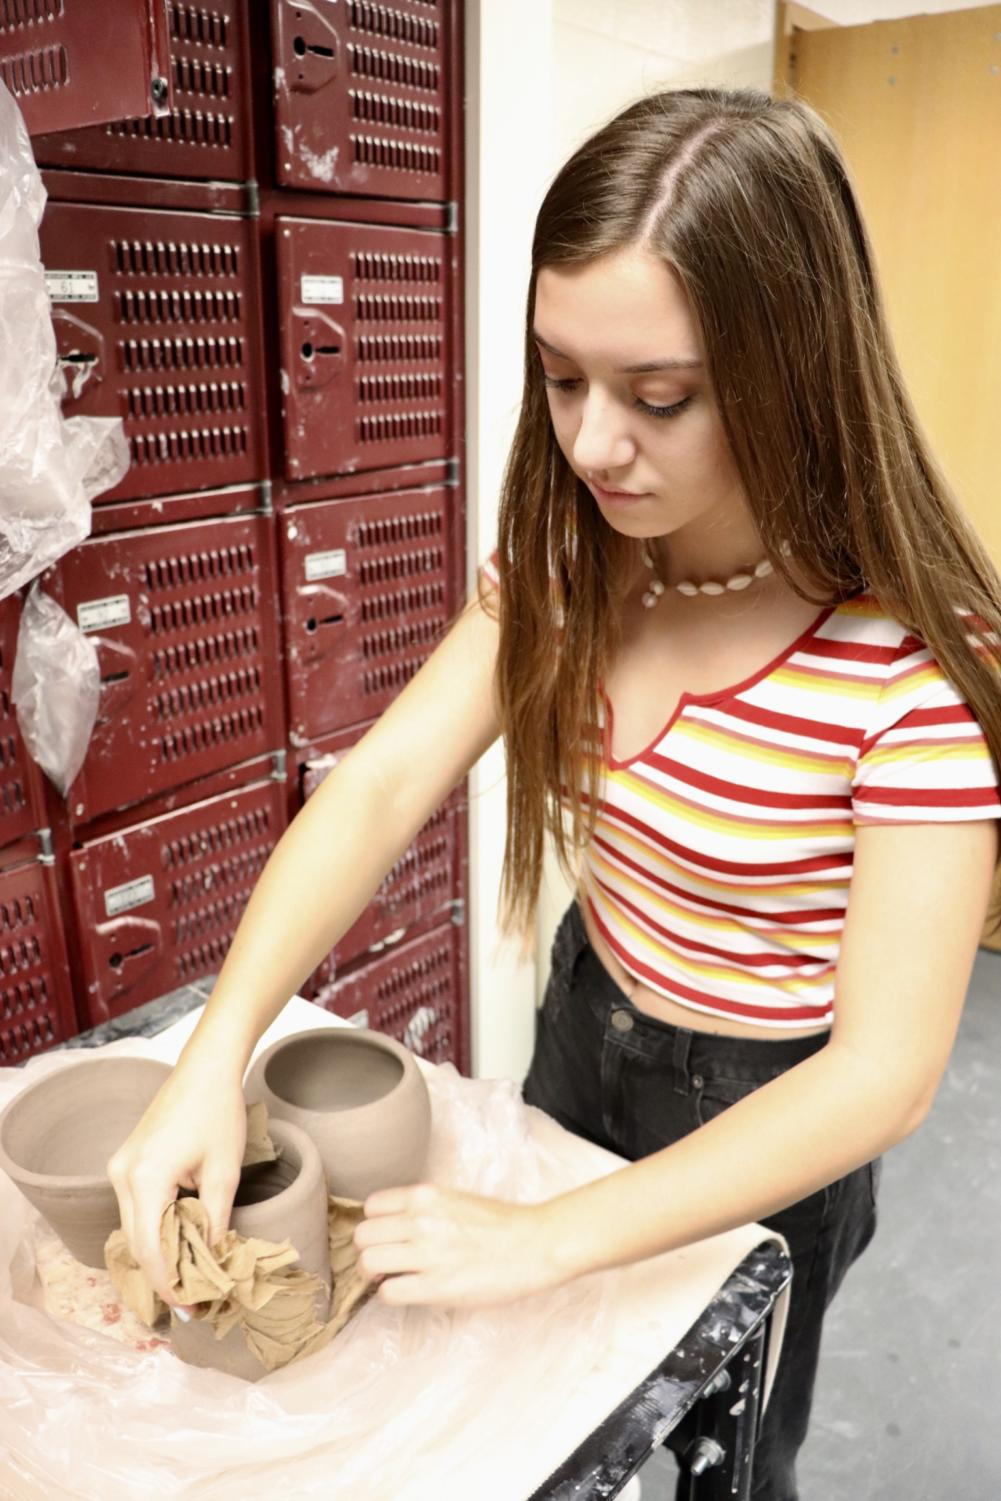 From+Covered+to+Coated%3A+Lilly+Branks%2C+ceramics+student+and+sophomore%2C+unwraps+her+creations+to+reveal+their+bare+clay+outer+shells.+Branks+said+that+the+next+step+in+producing+her+final+product+would+be+coating+the+pieces+with+one+of+the+various+colors+of+glaze.+Some+of+the+colors+used+by+other+students+included+brick+red%2C+light+yellow%2C+and+jade+green.